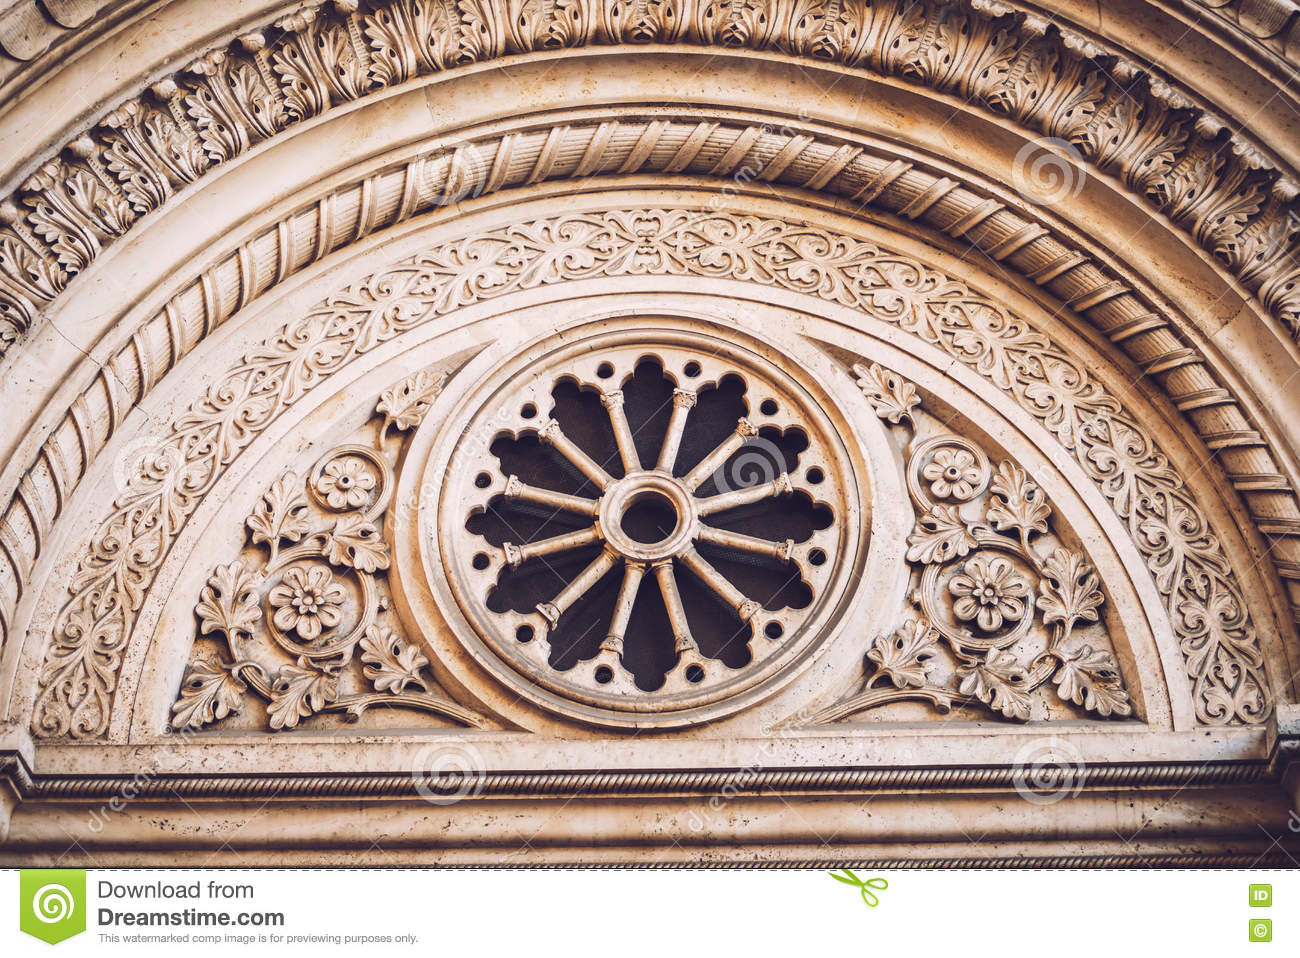 Decorative Arch On Top Of Doors In Rome Italy Stock